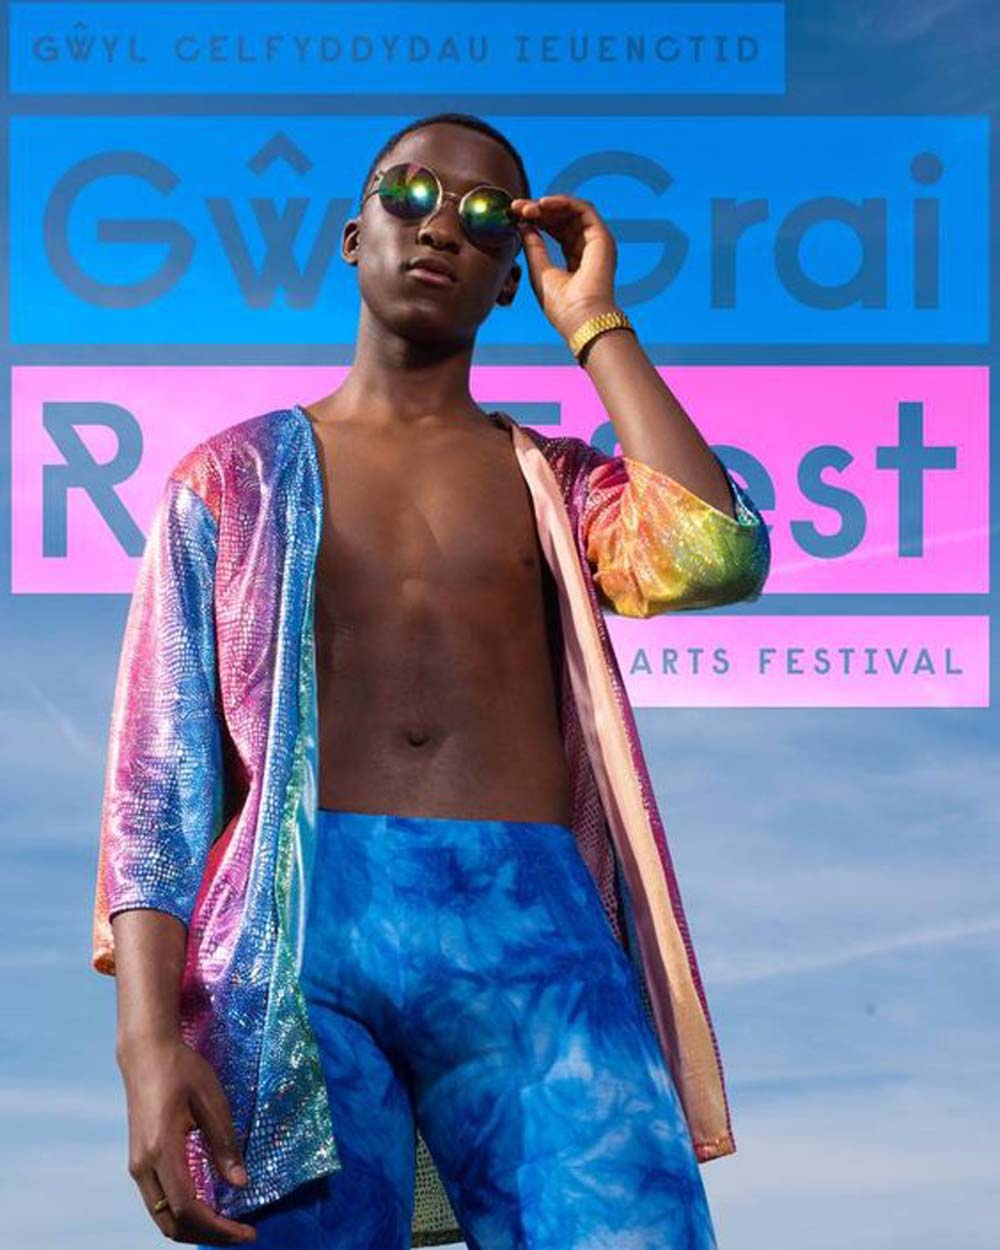 RawFfest takes place in Cardiff from April 25-28, 2019.